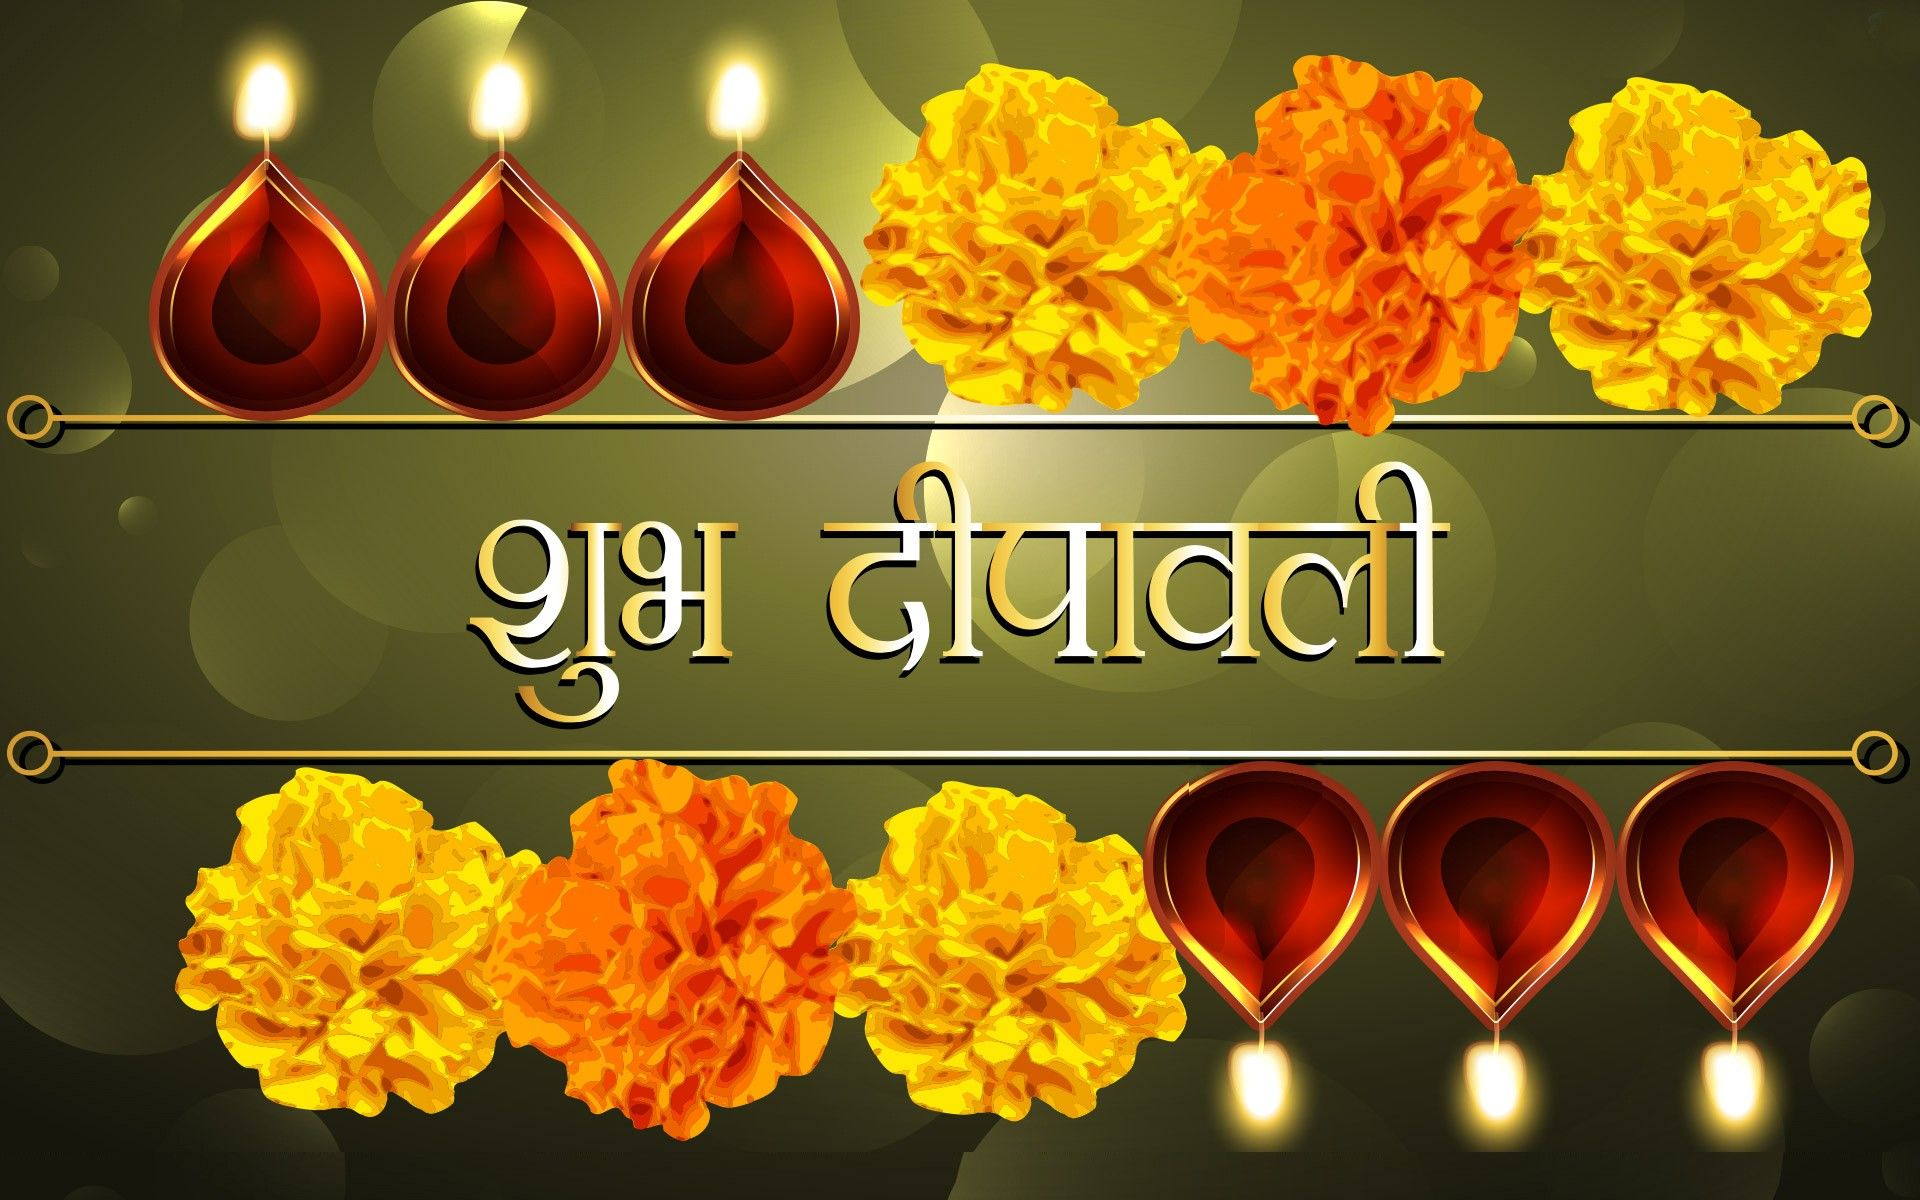 Shubh deepawali 2015 download free hindi images httpwww shubh deepavali quotes thoughts shayari in hindi with images m4hsunfo Image collections